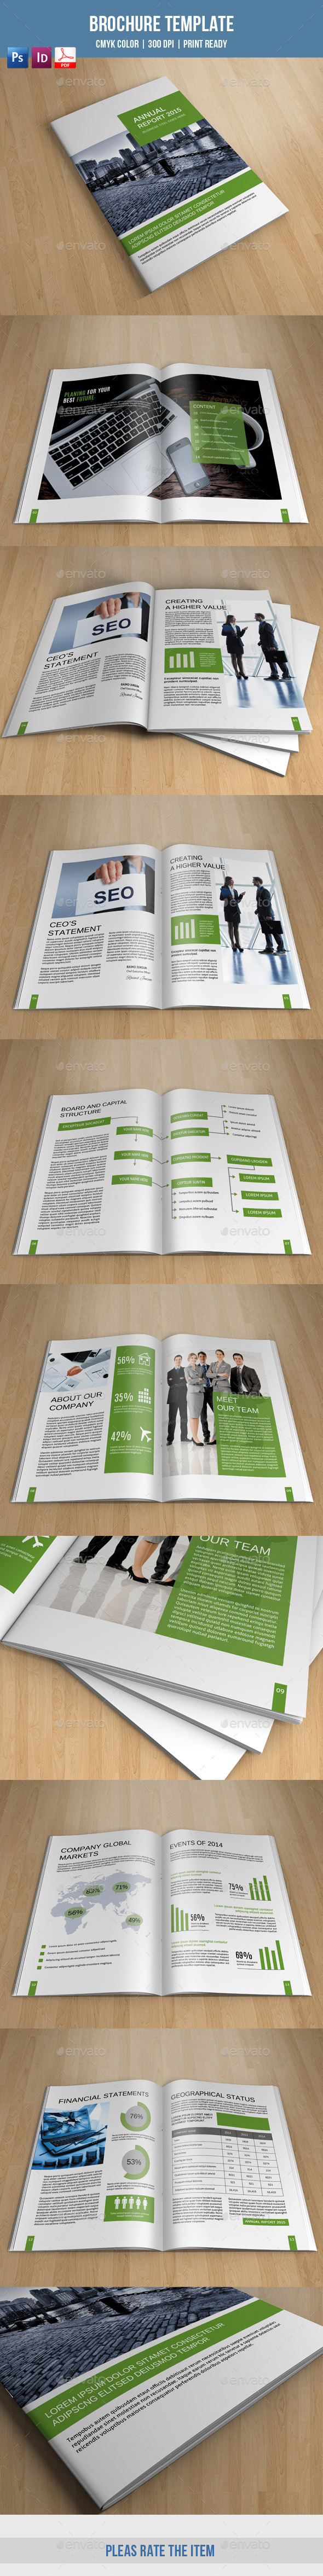 Annual Report Brochure-V191 - Corporate Brochures